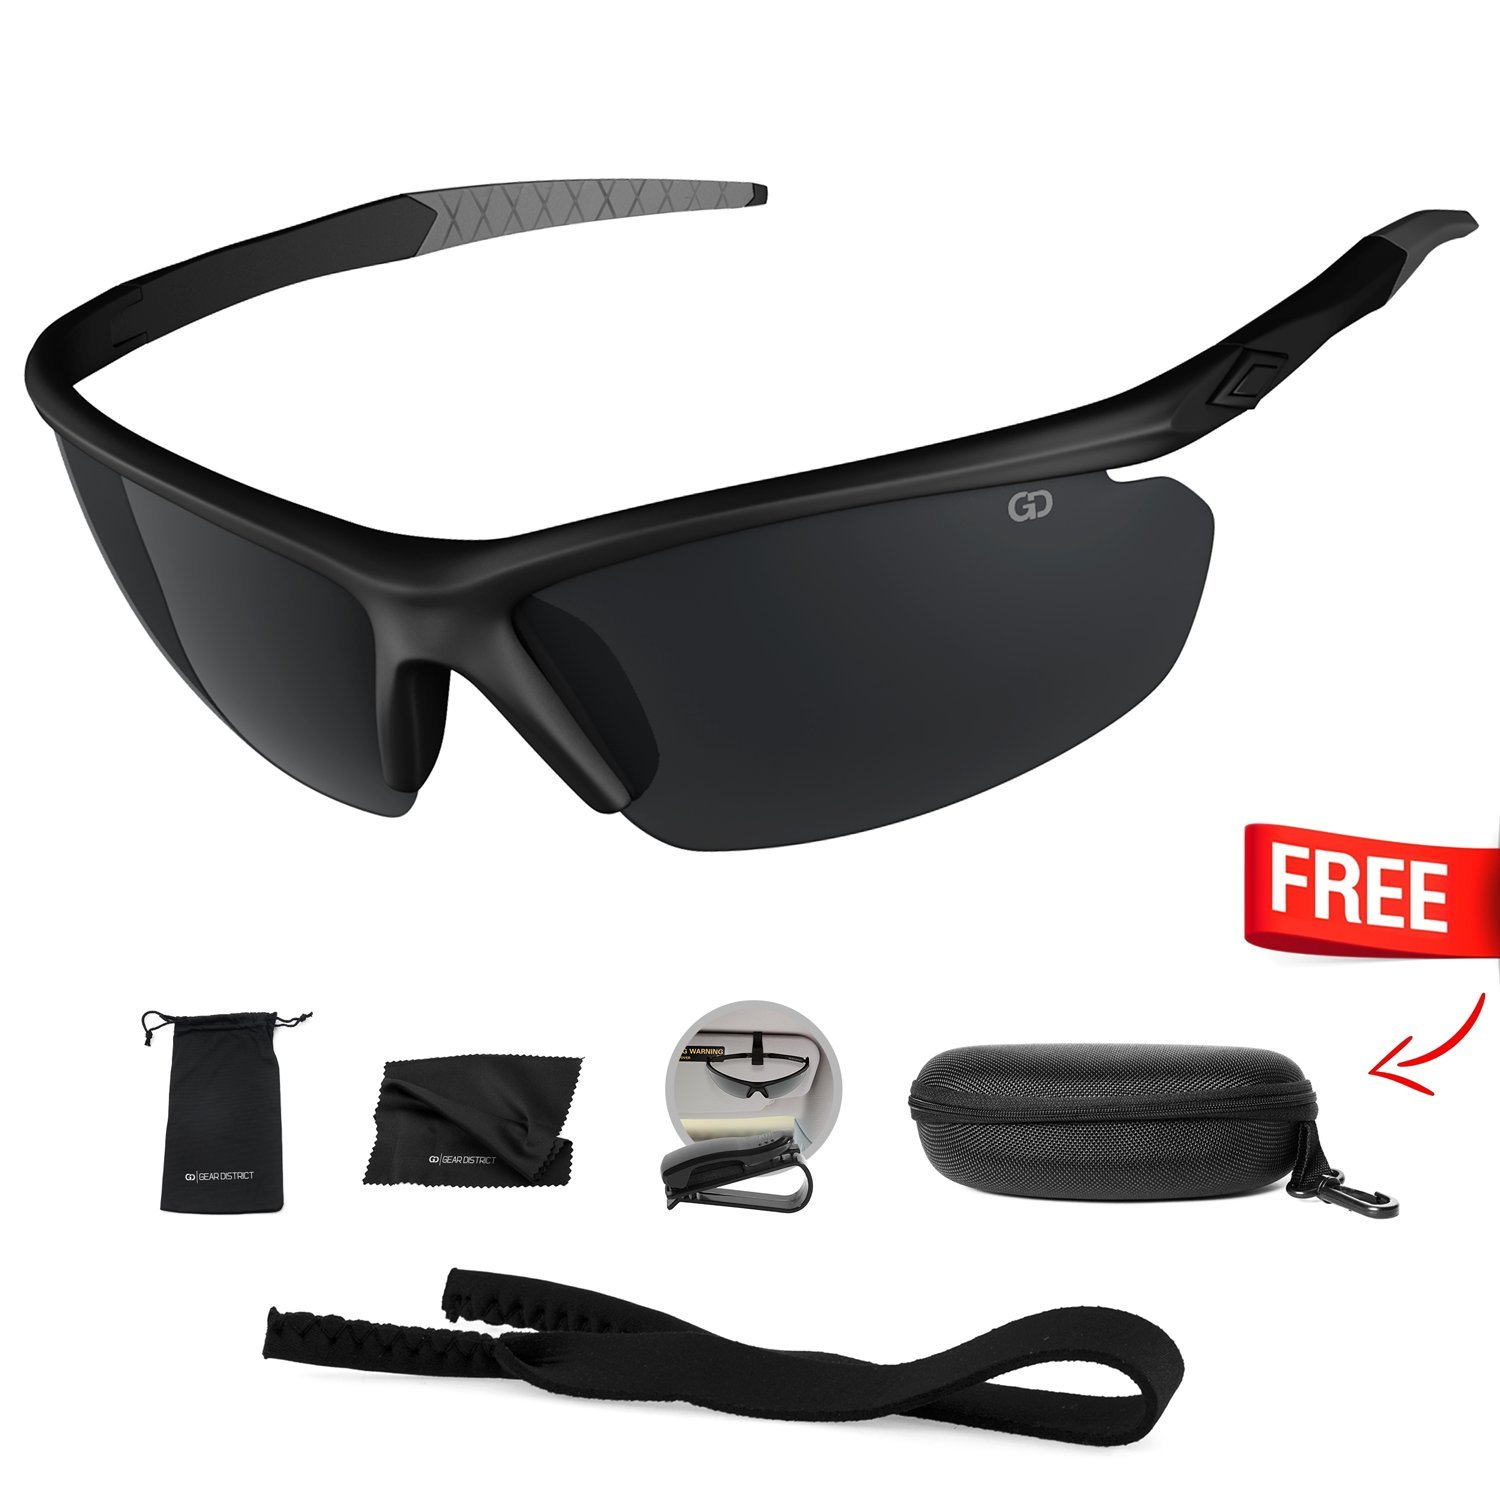 Polarized UV400 Sport Sunglasses Anti-Fog Ideal for Driving or Sports Activity (Black, Grey)